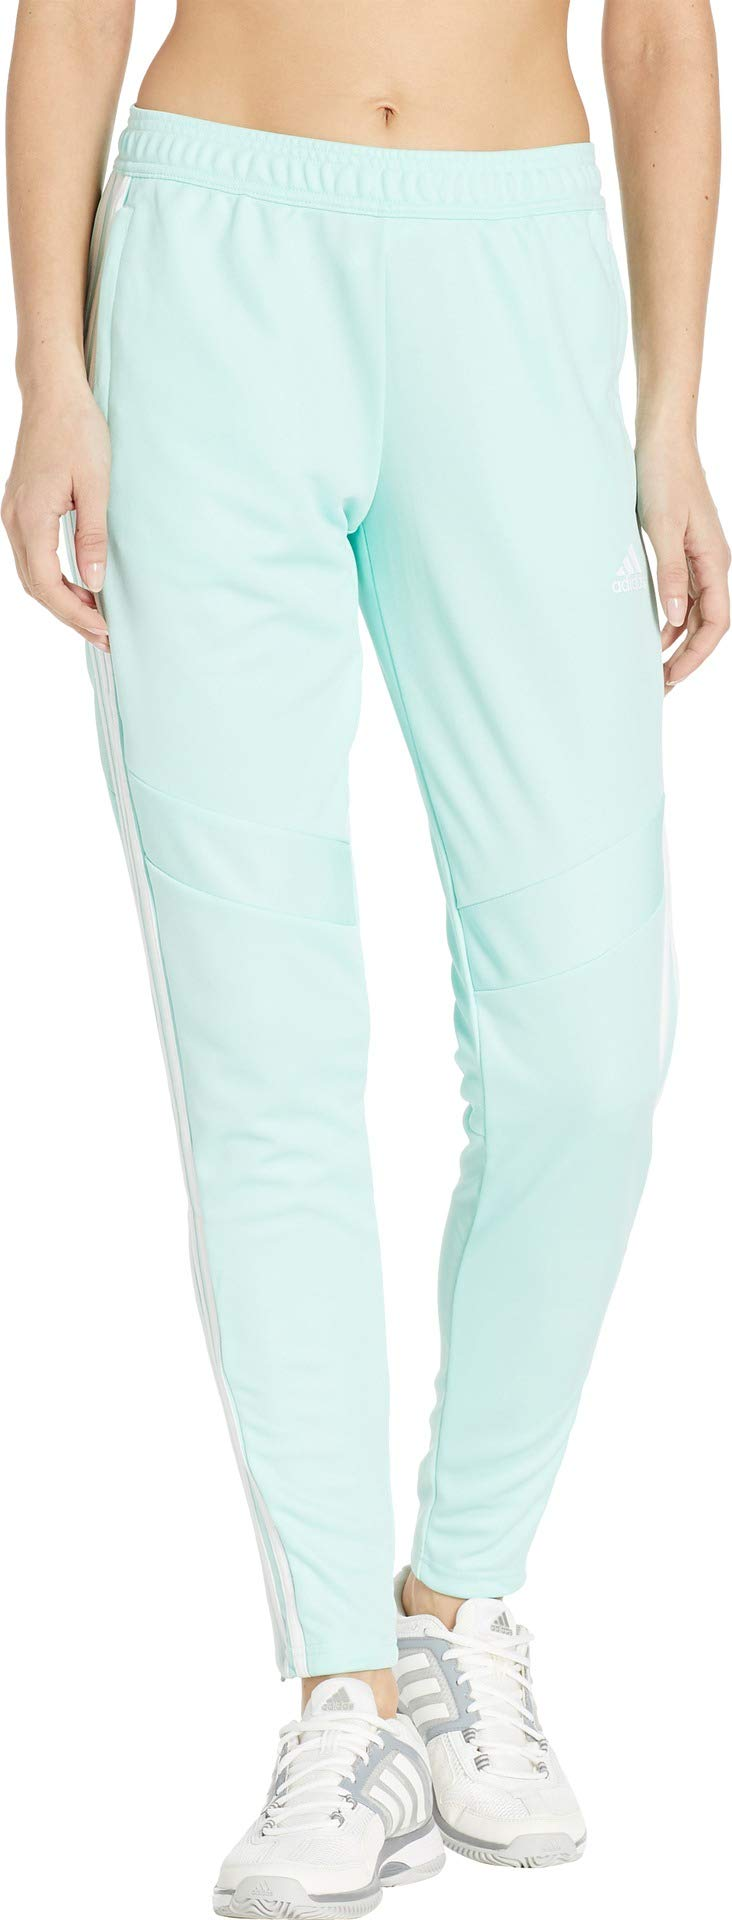 adidas Women's Tiro '19 Pants Clear Mint/White X-Large 30 by adidas (Image #1)